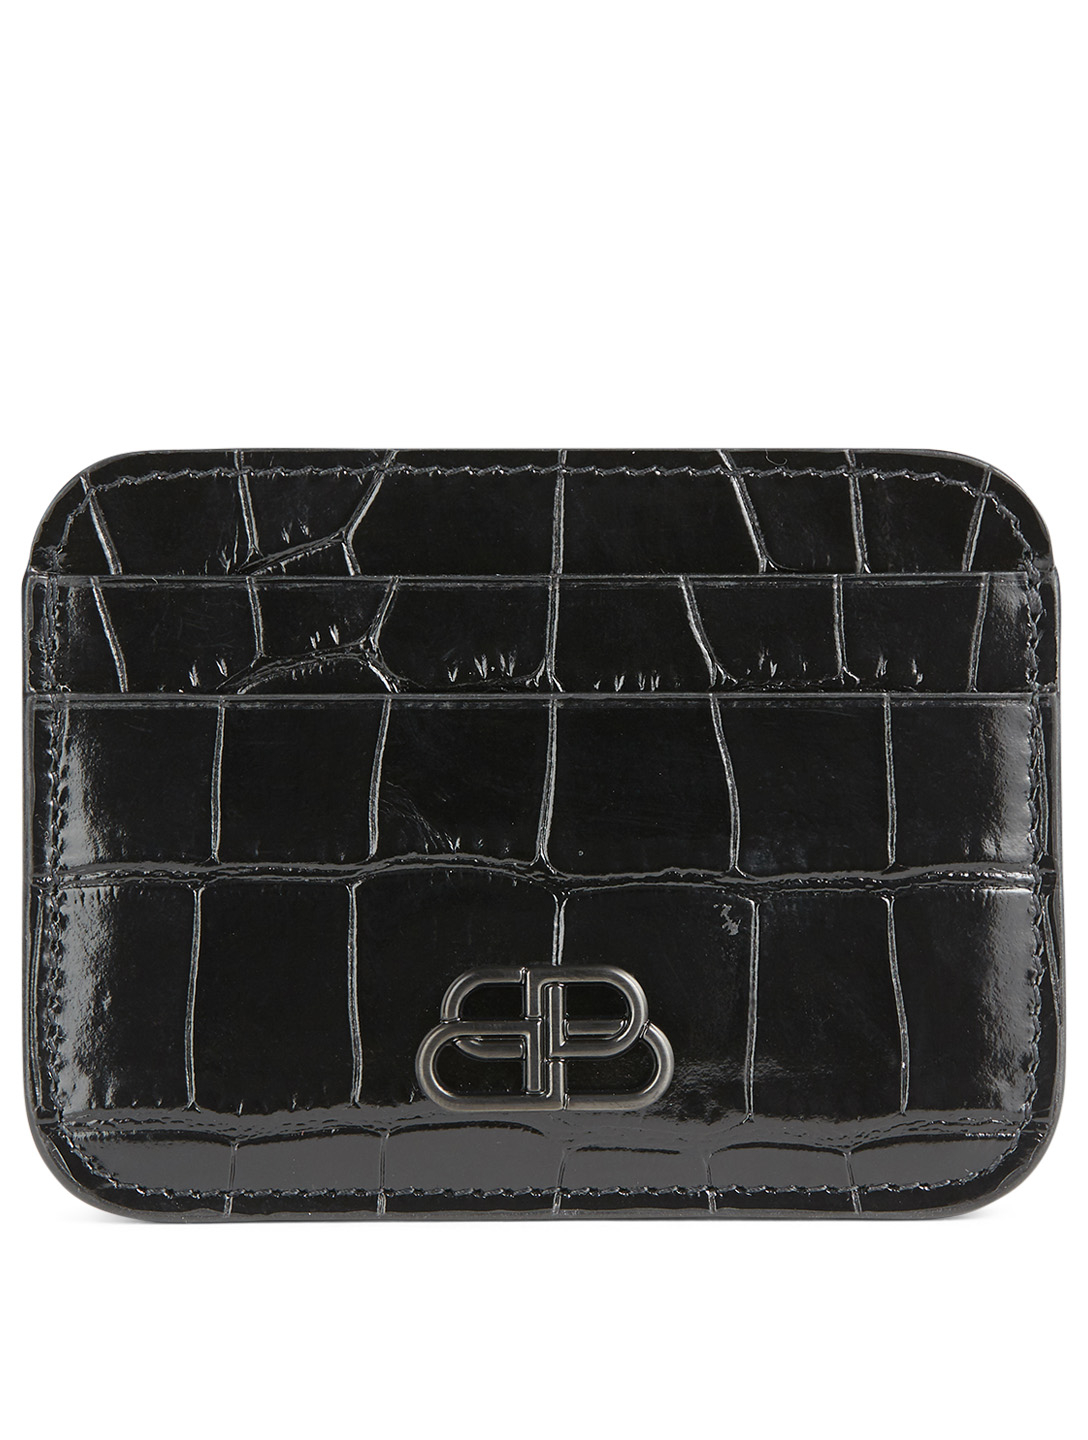 BALENCIAGA BB Croc-Embossed Leather Card Holder Women's Black